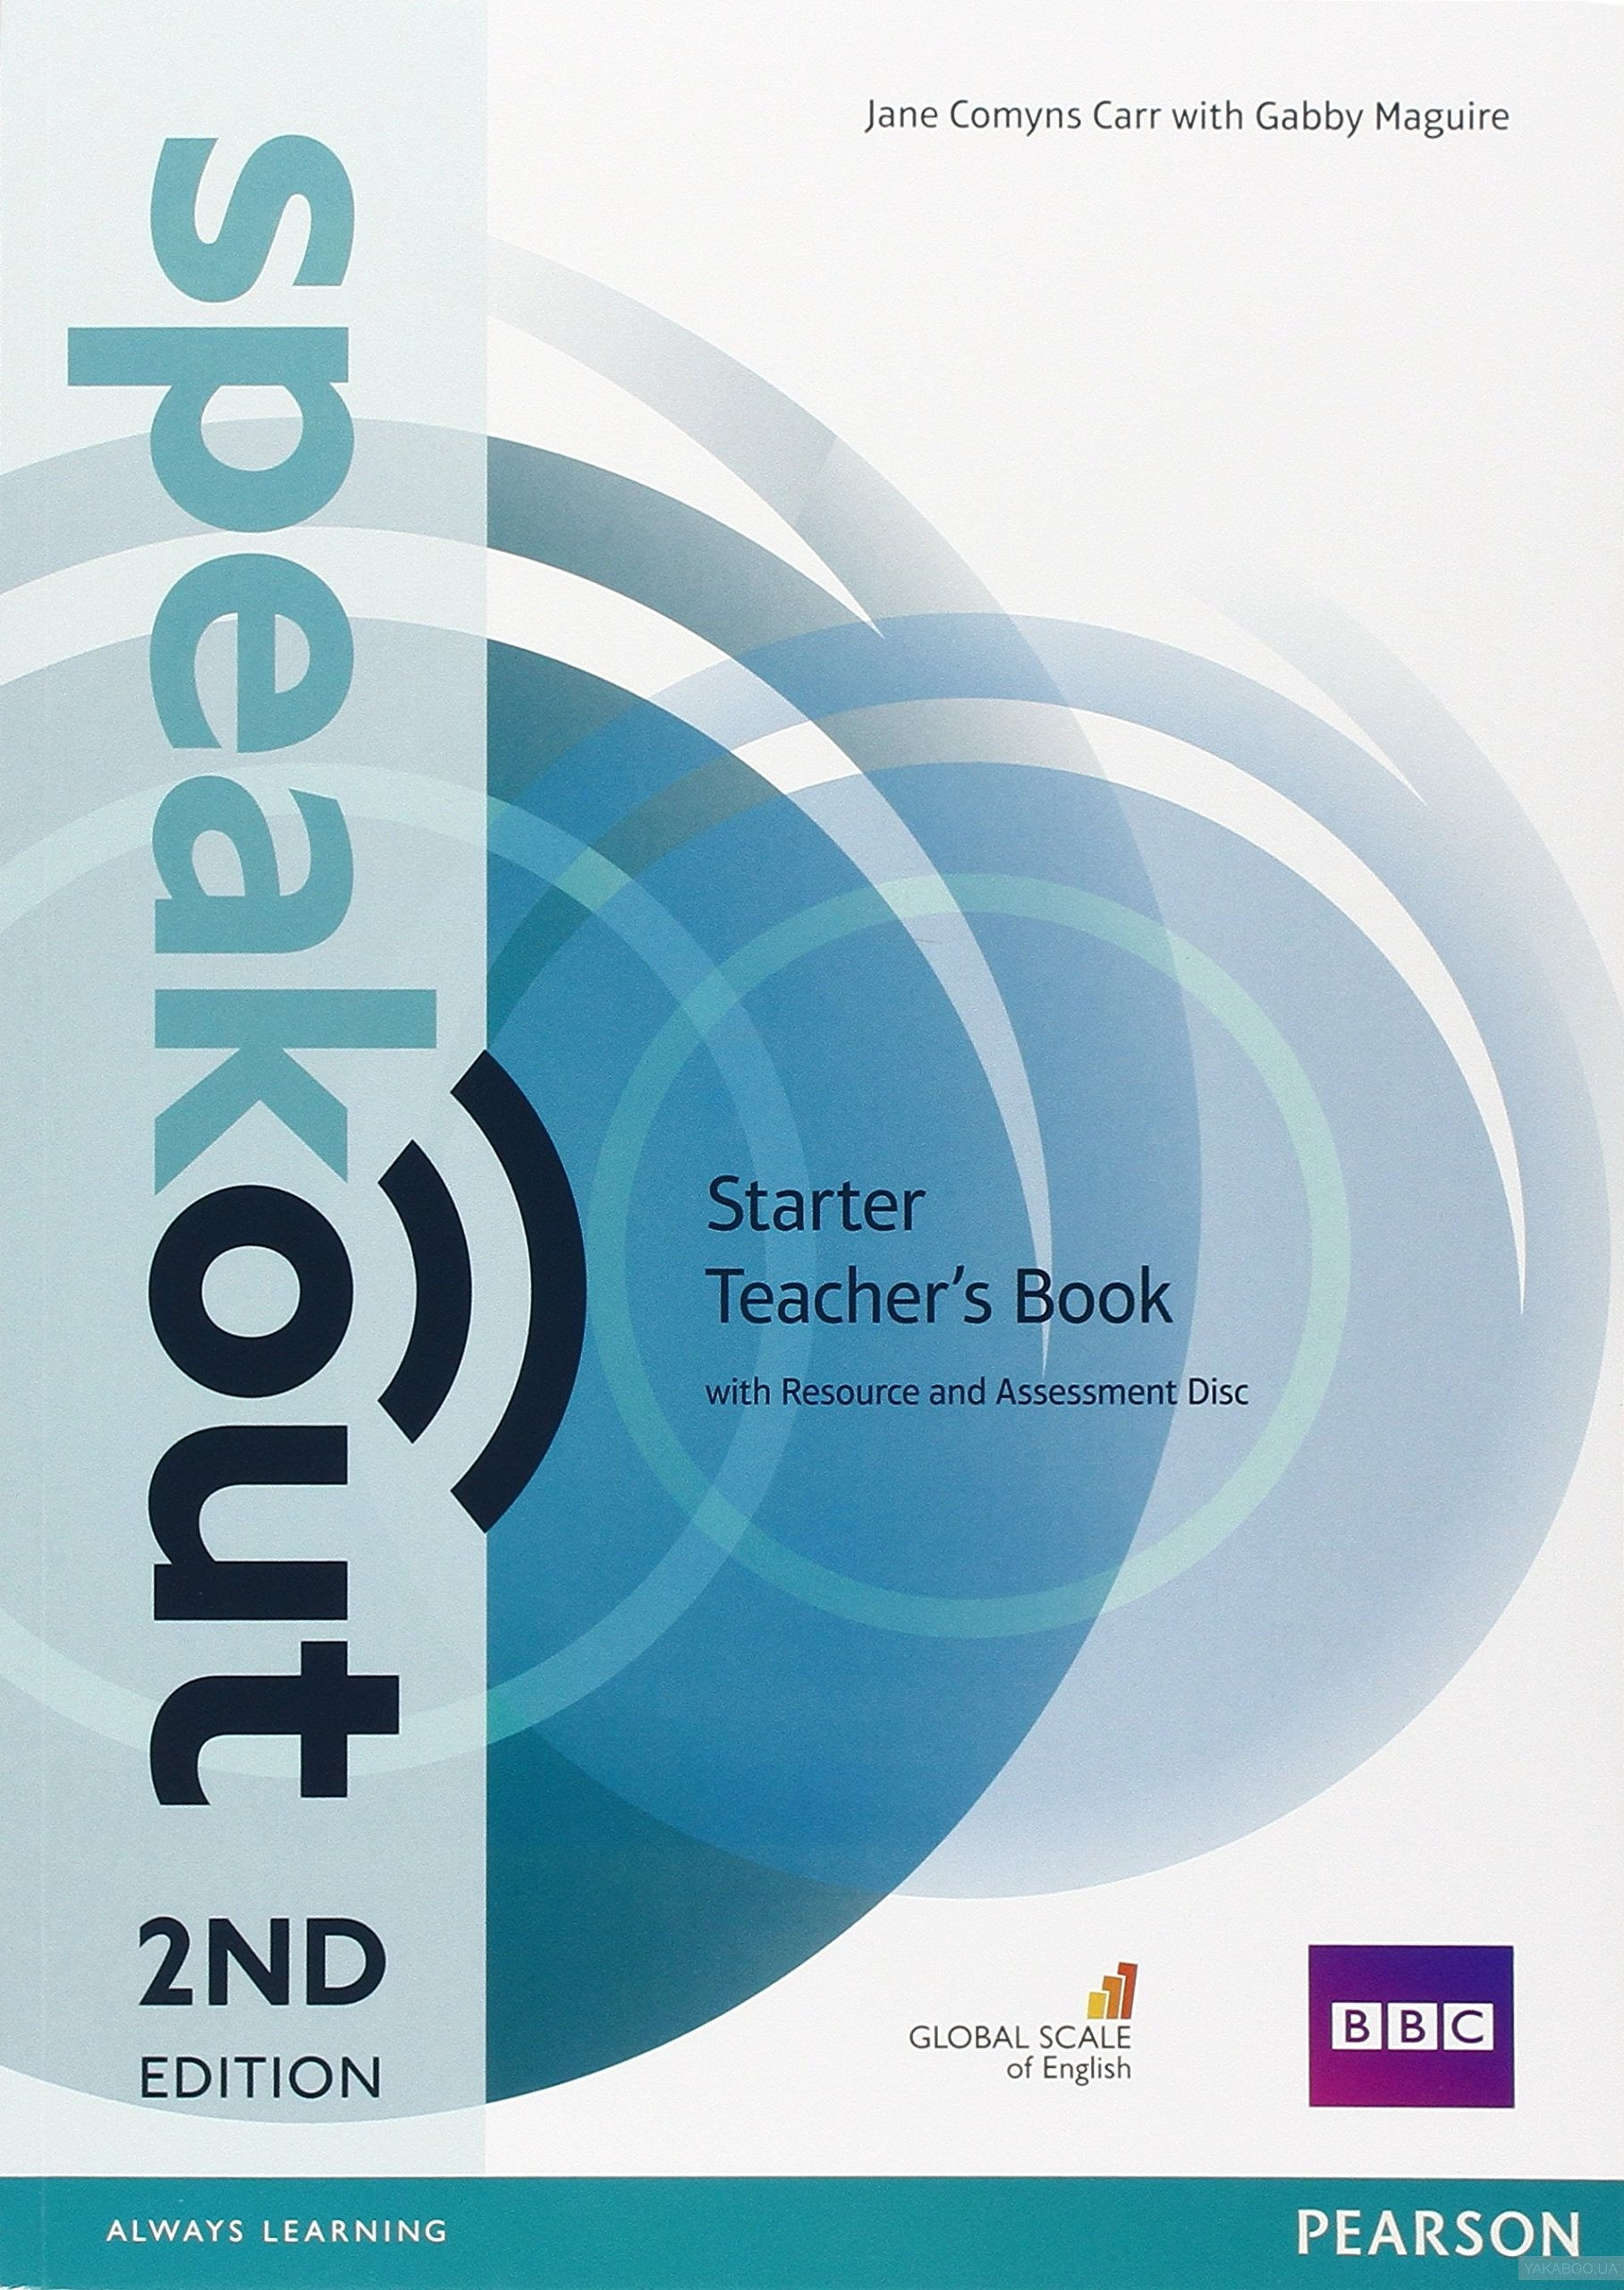 Speakout 2nd edition starter teacher's guide with resource & assessment disc